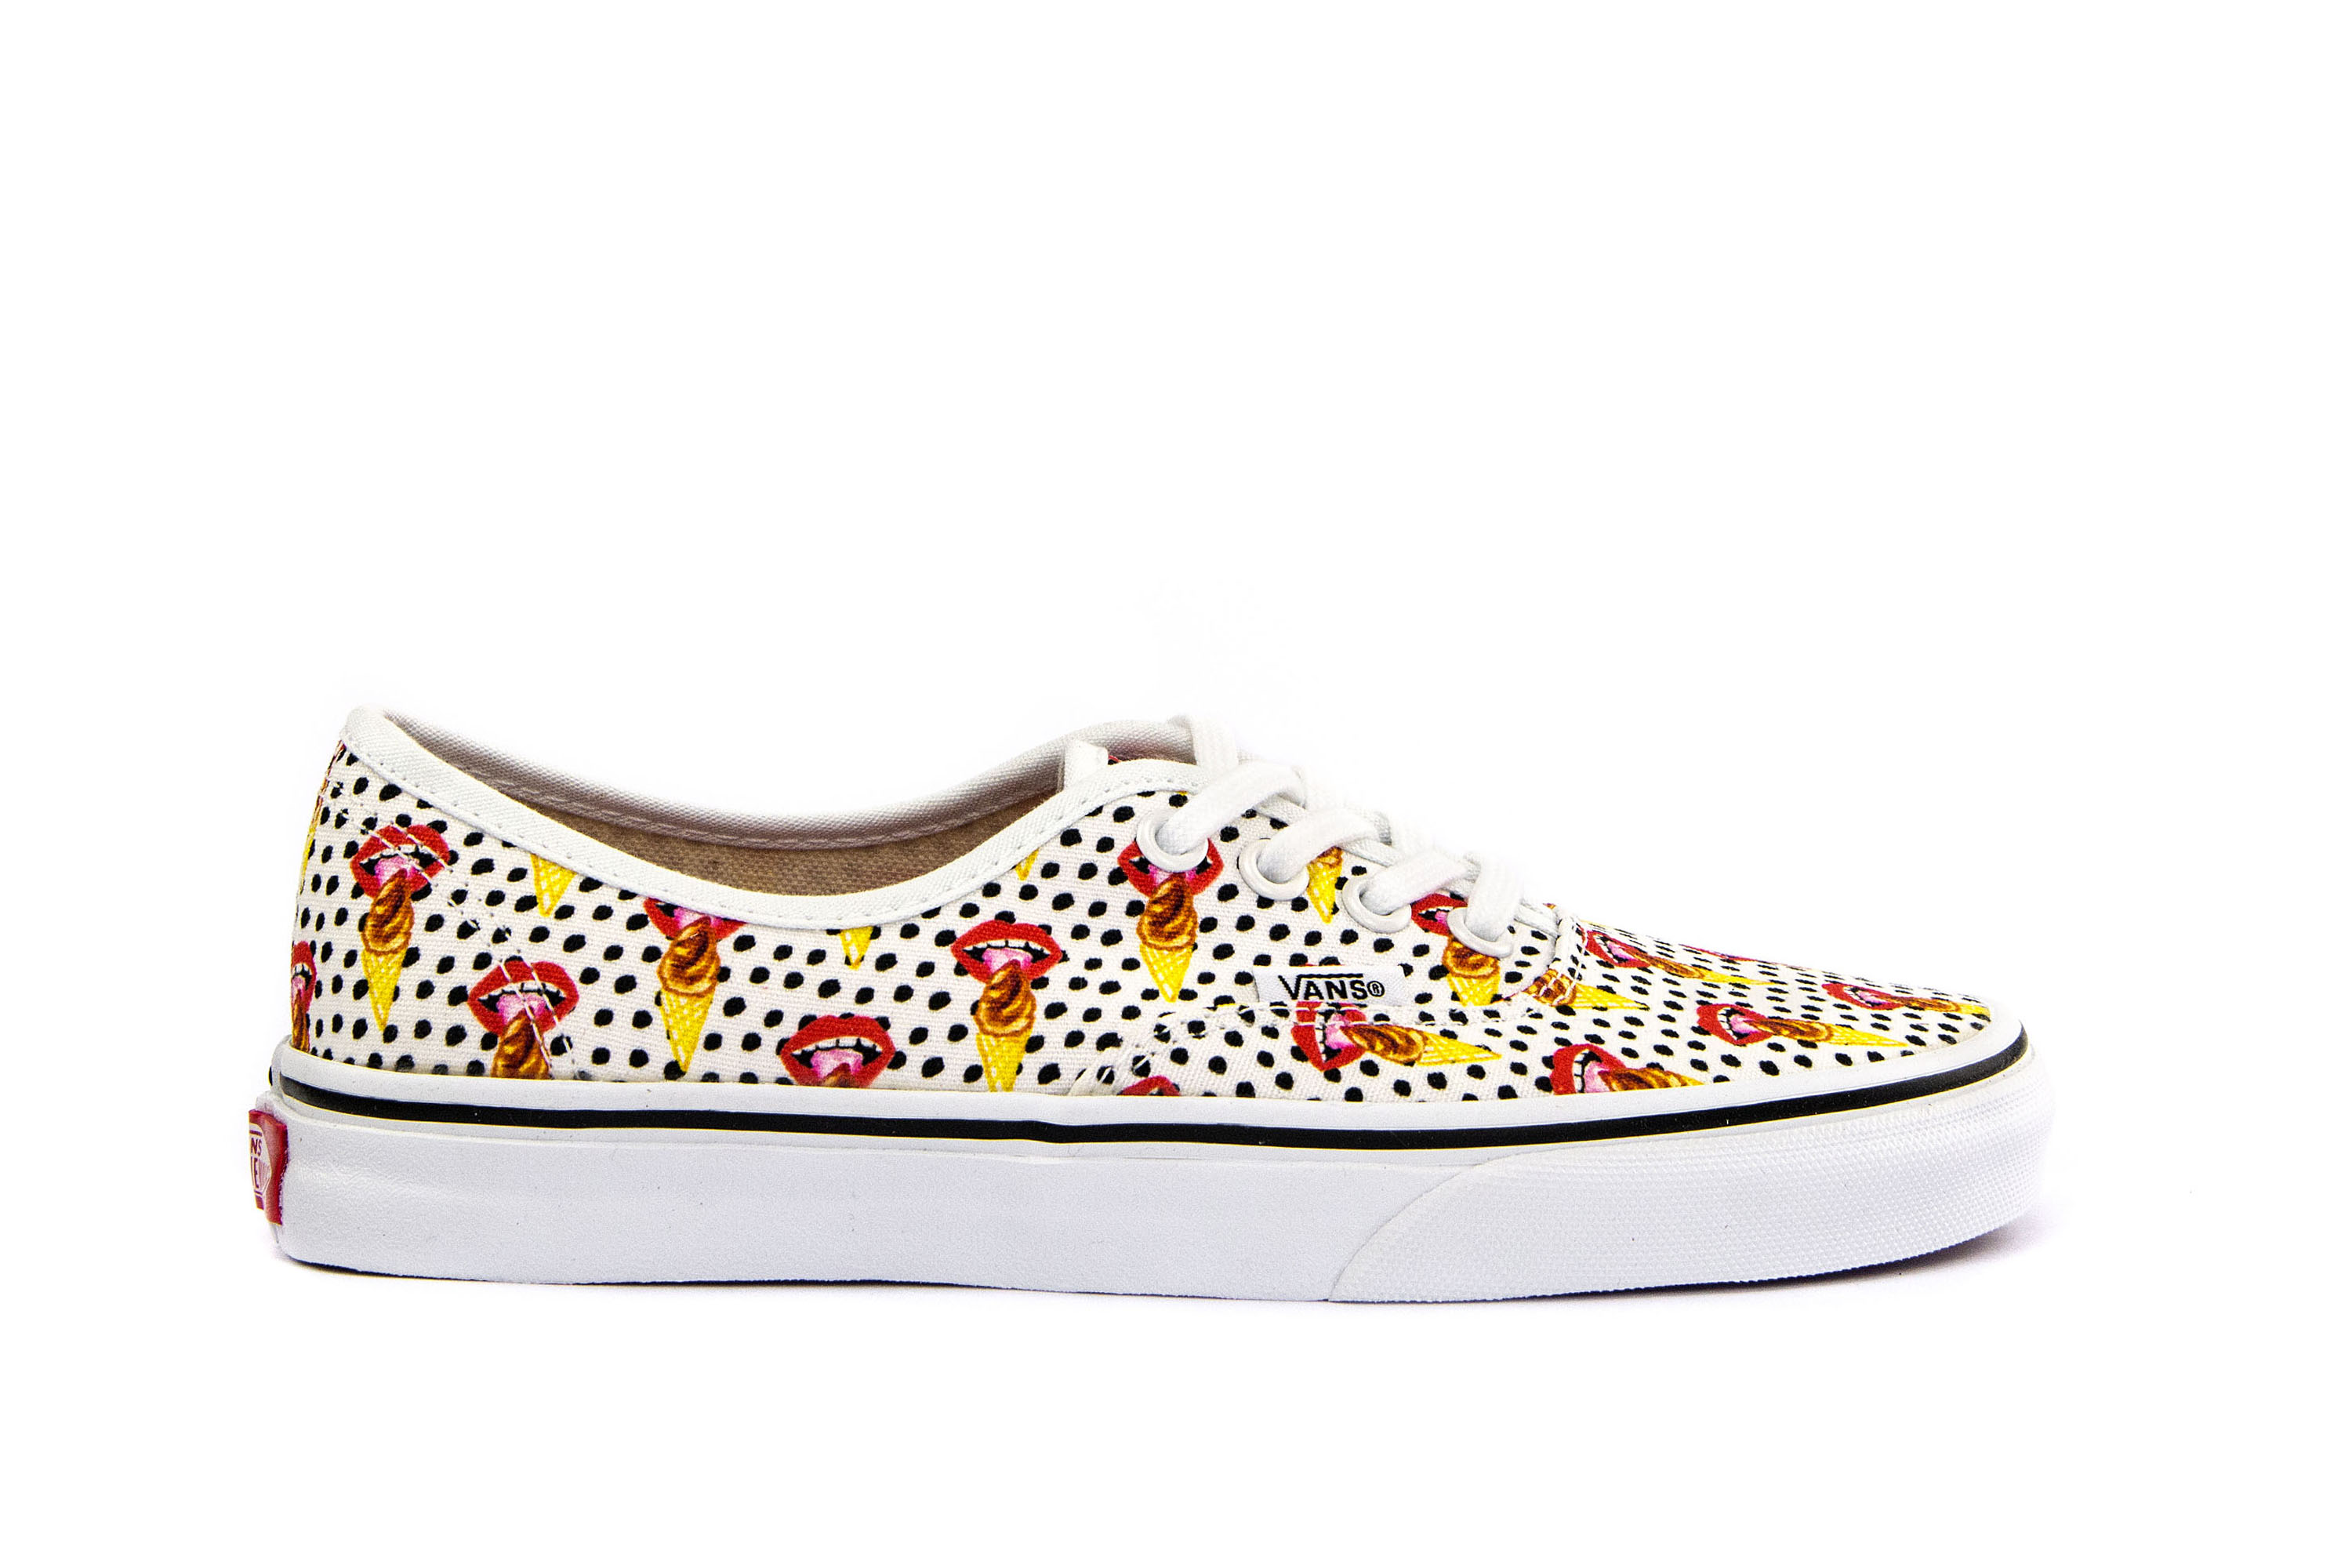 5cd85f924d8c VANS Womens Shoes Lace-Up Sneakers AUTHENTIC (KENDRA DANDY) Printed ...